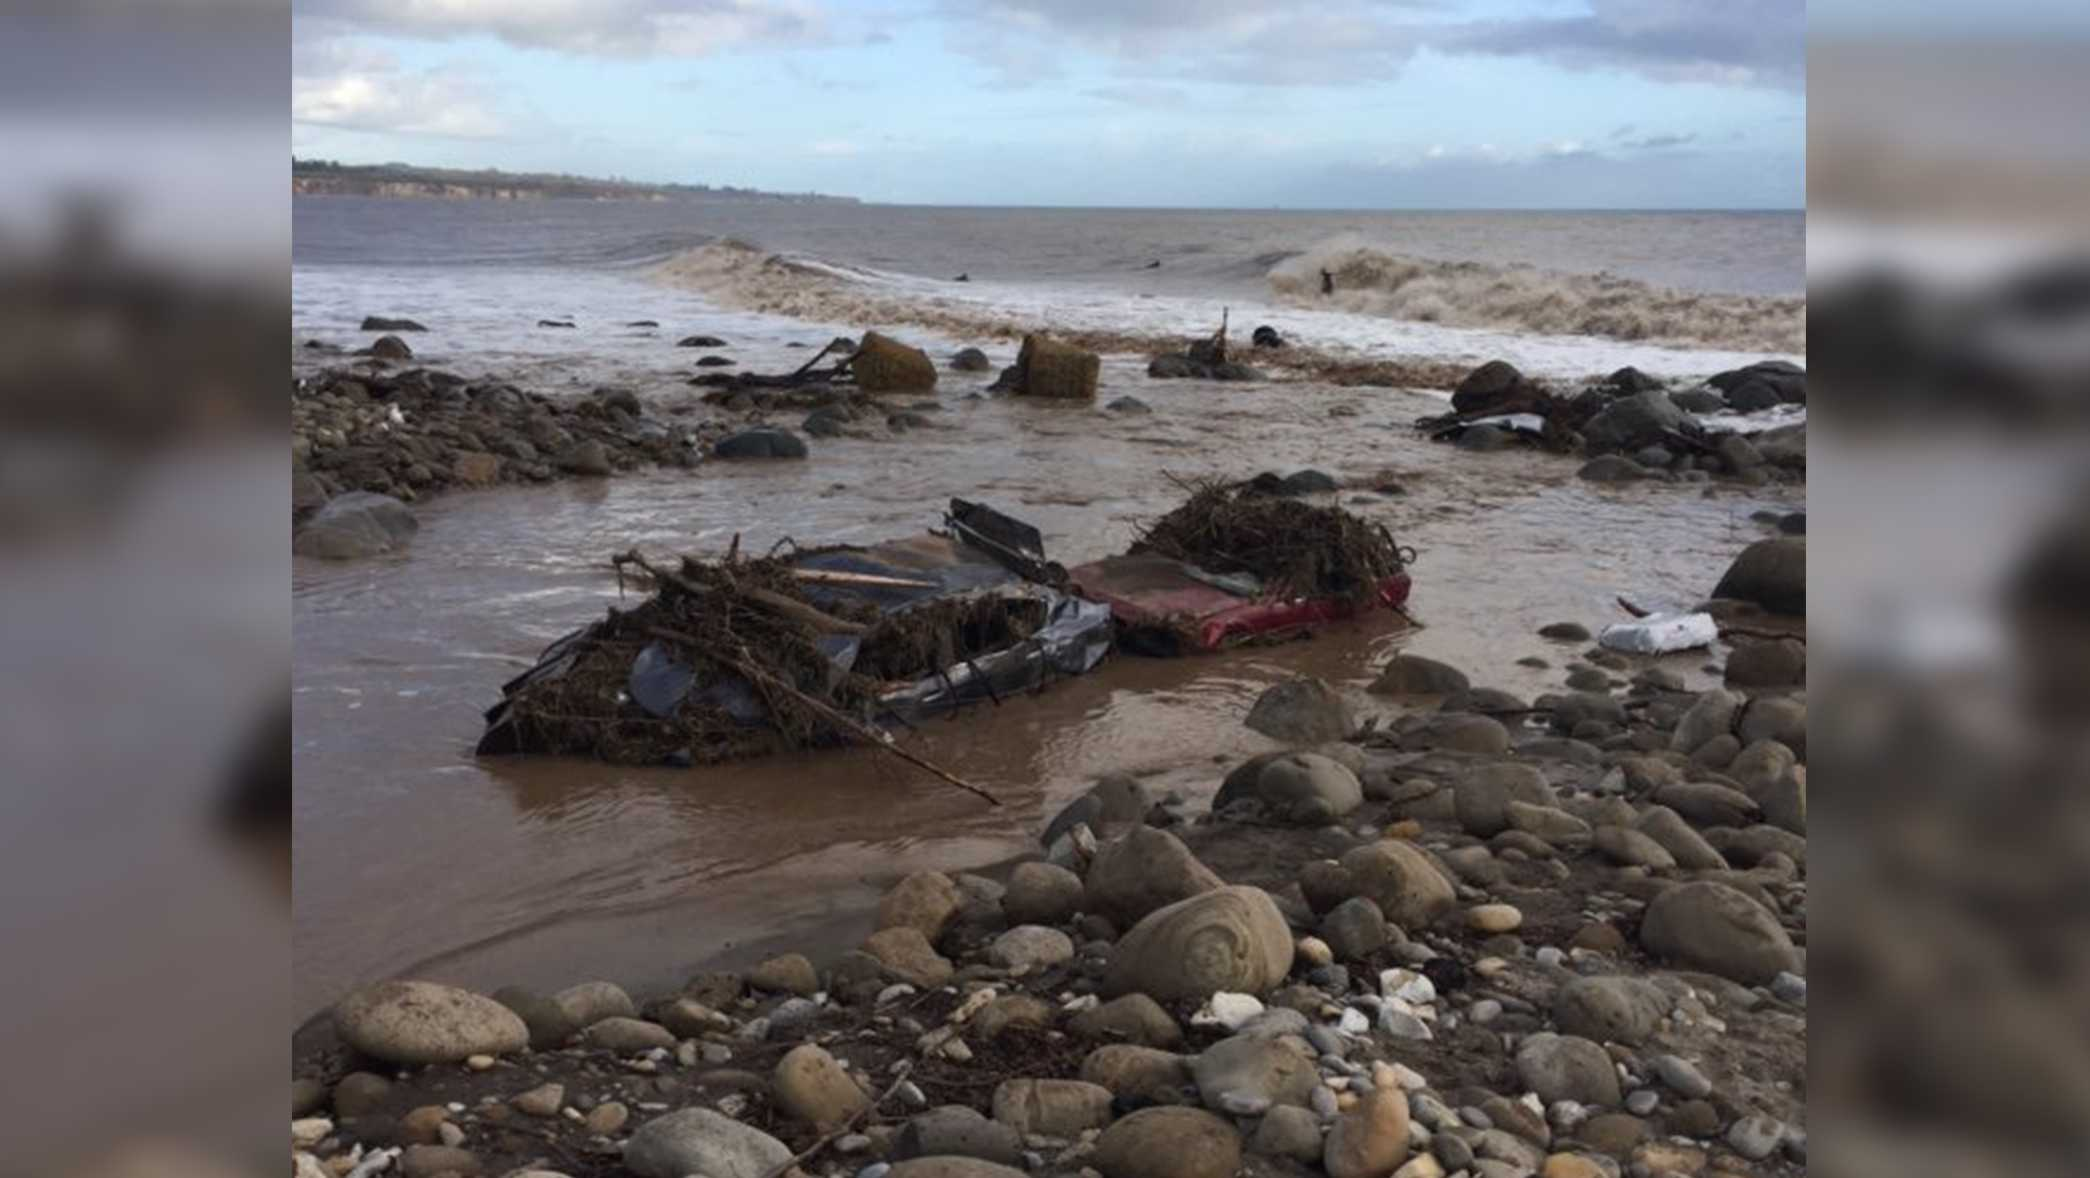 Five cars washed up onto a beach after flooding at the El Capitan State Beach in Santa Barbara County, the California Department of Fish and Wildlife said in a tweet. Jan. 20, 2017